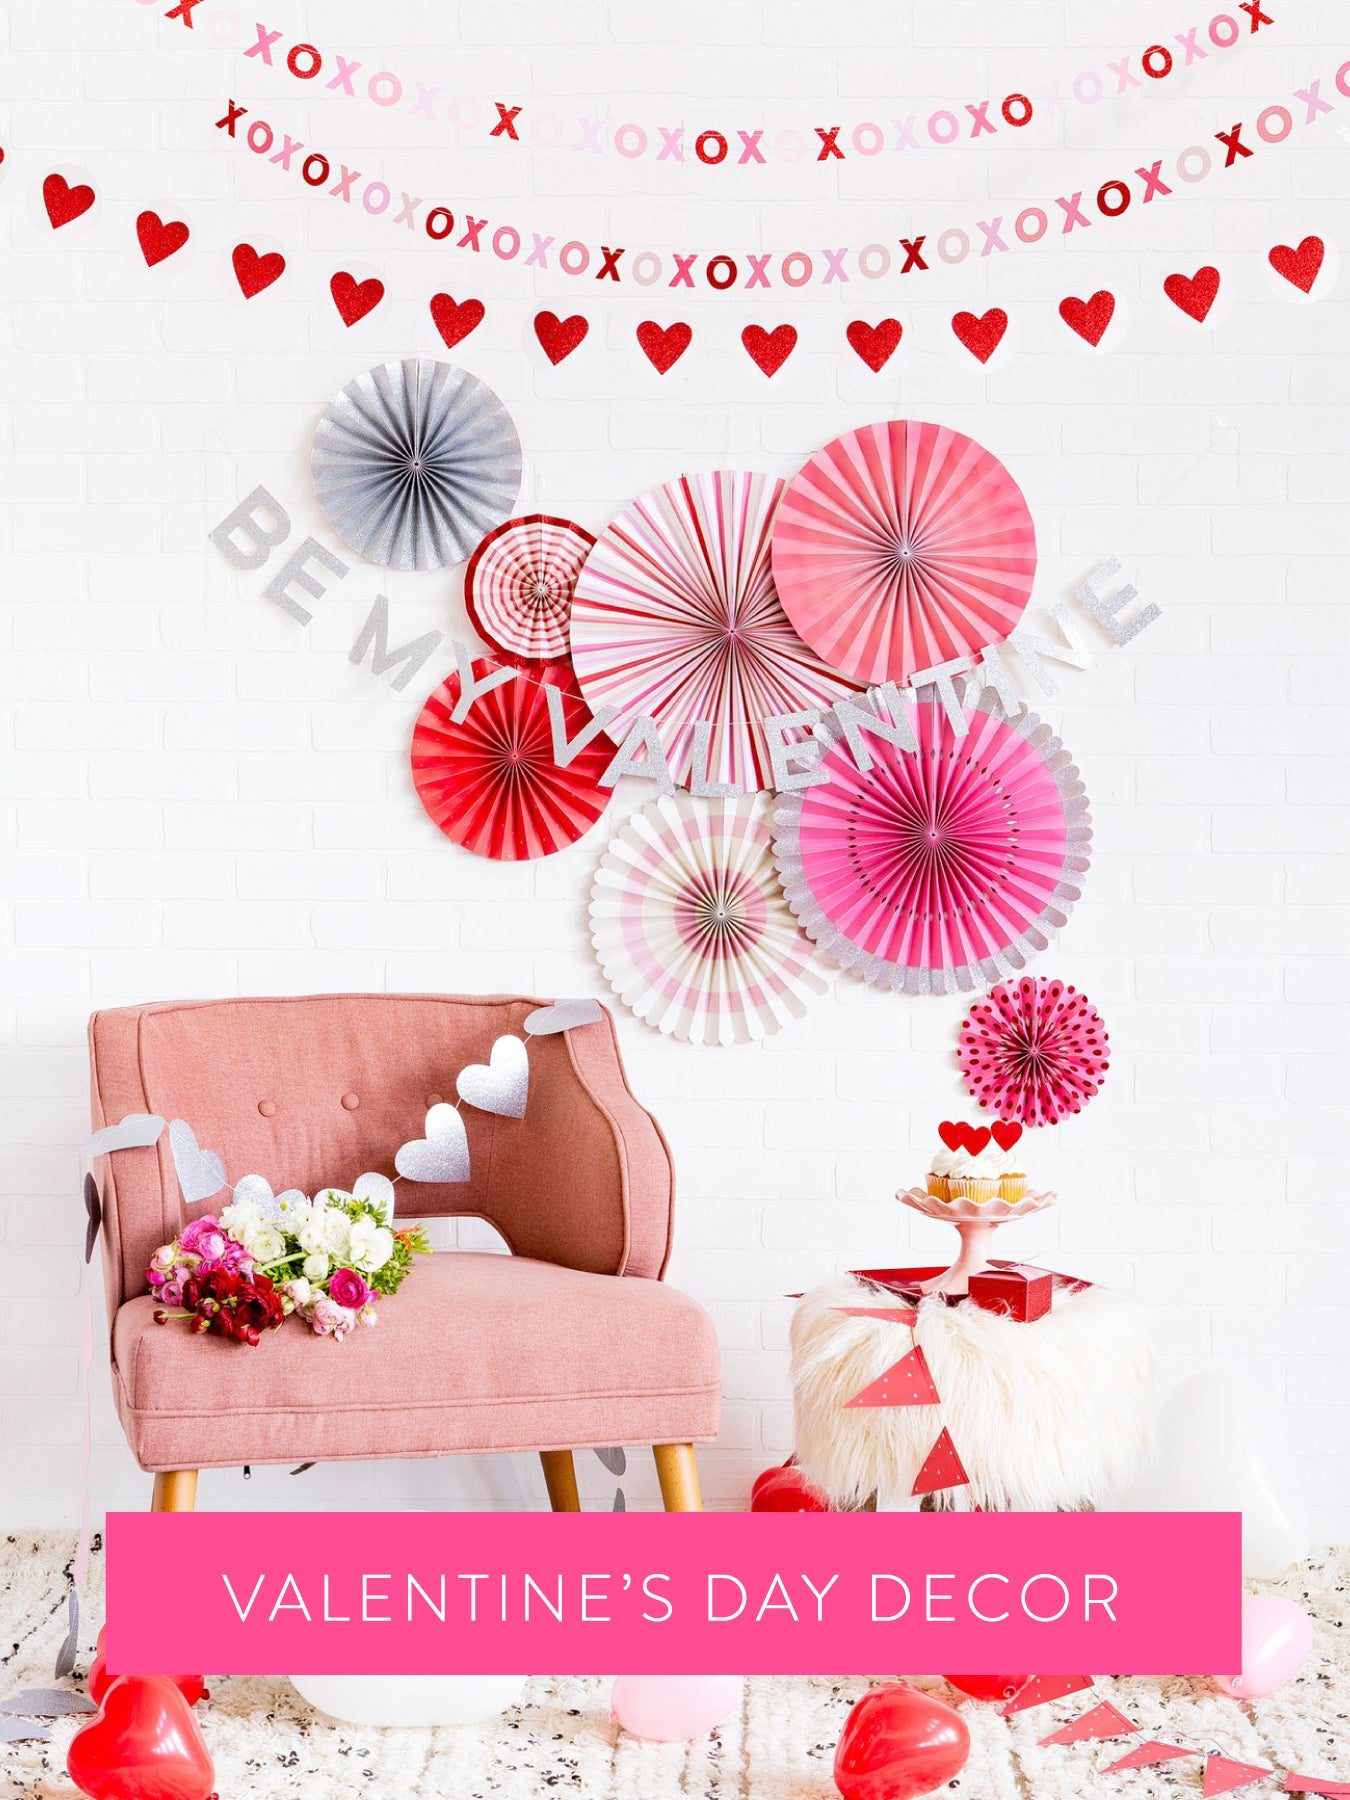 Shop for Valentine's Day party decorations